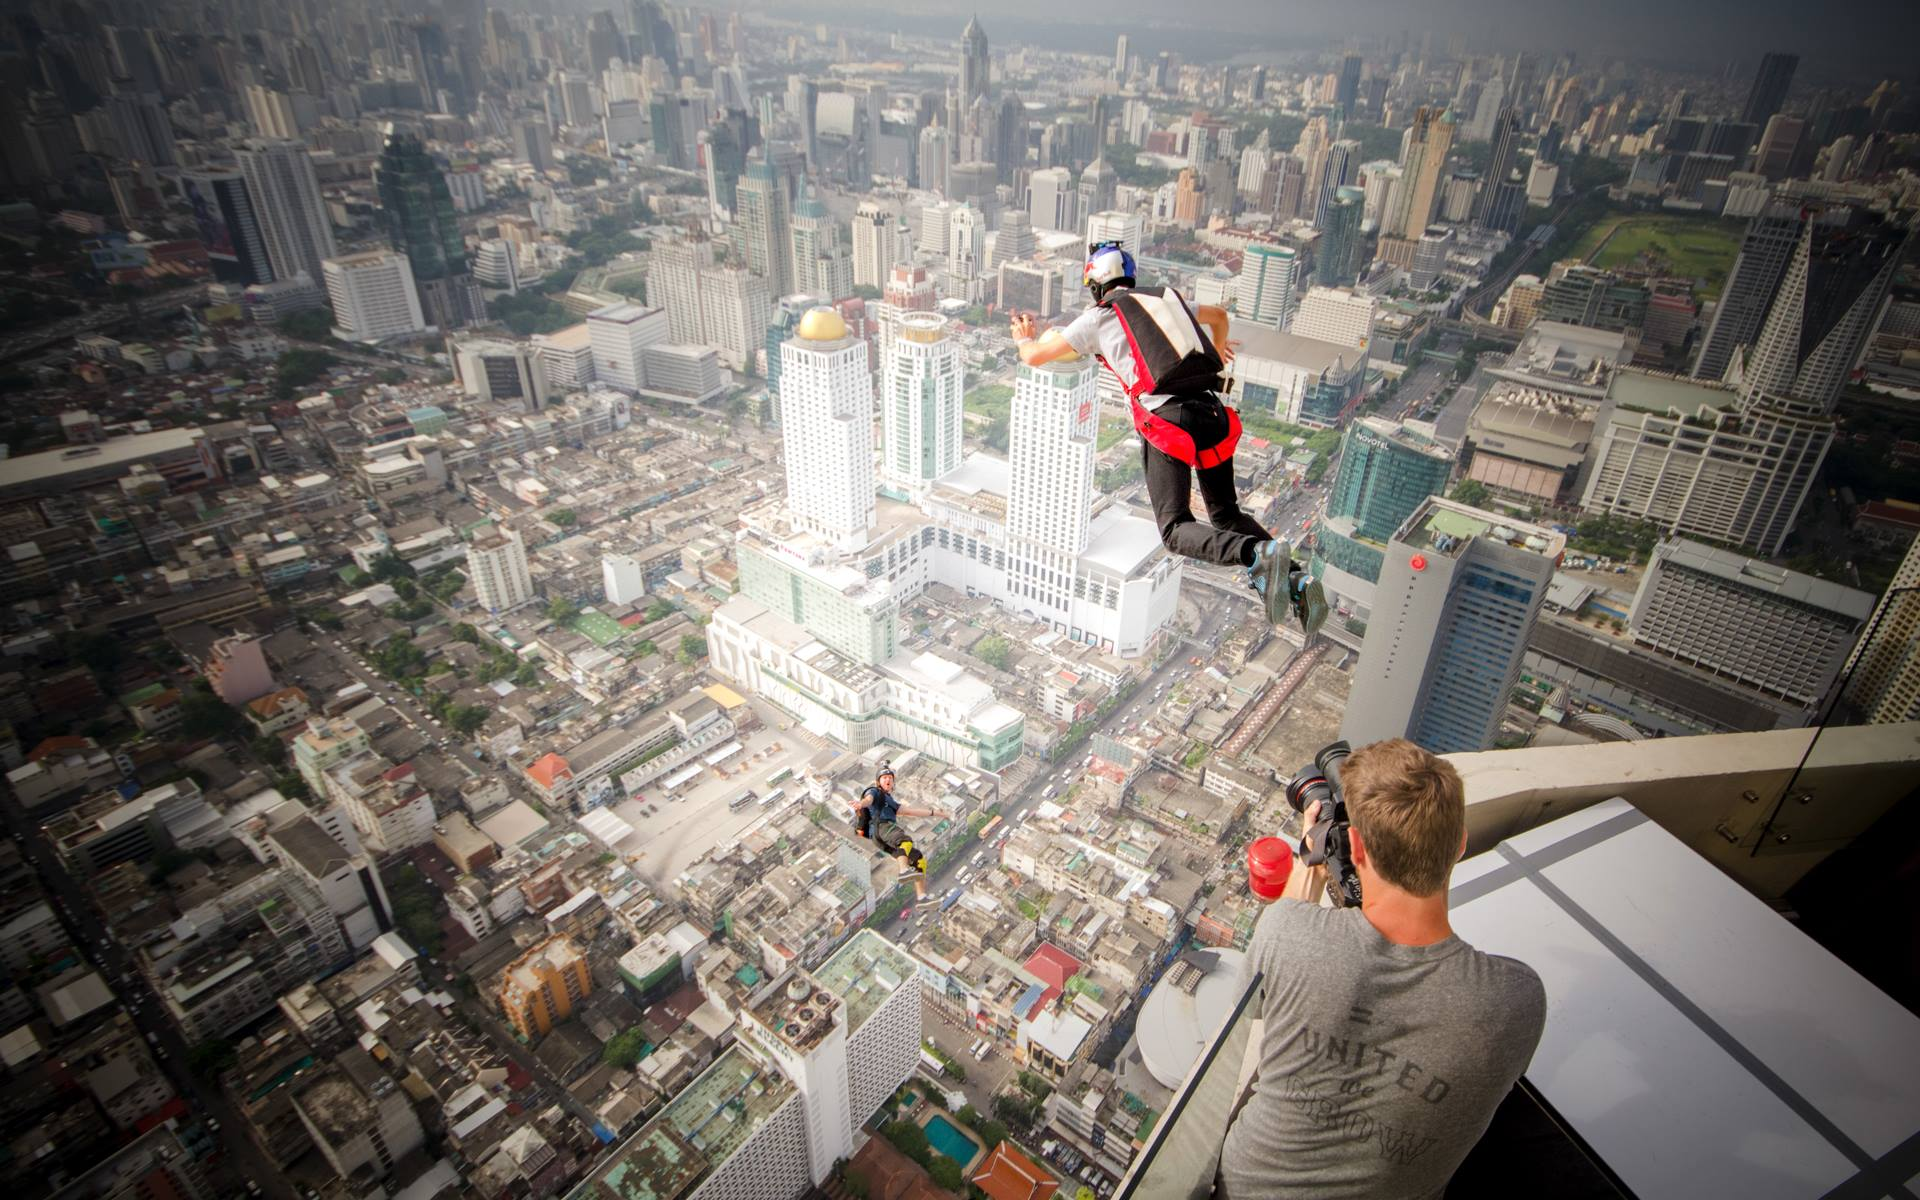 BaseJumping in city